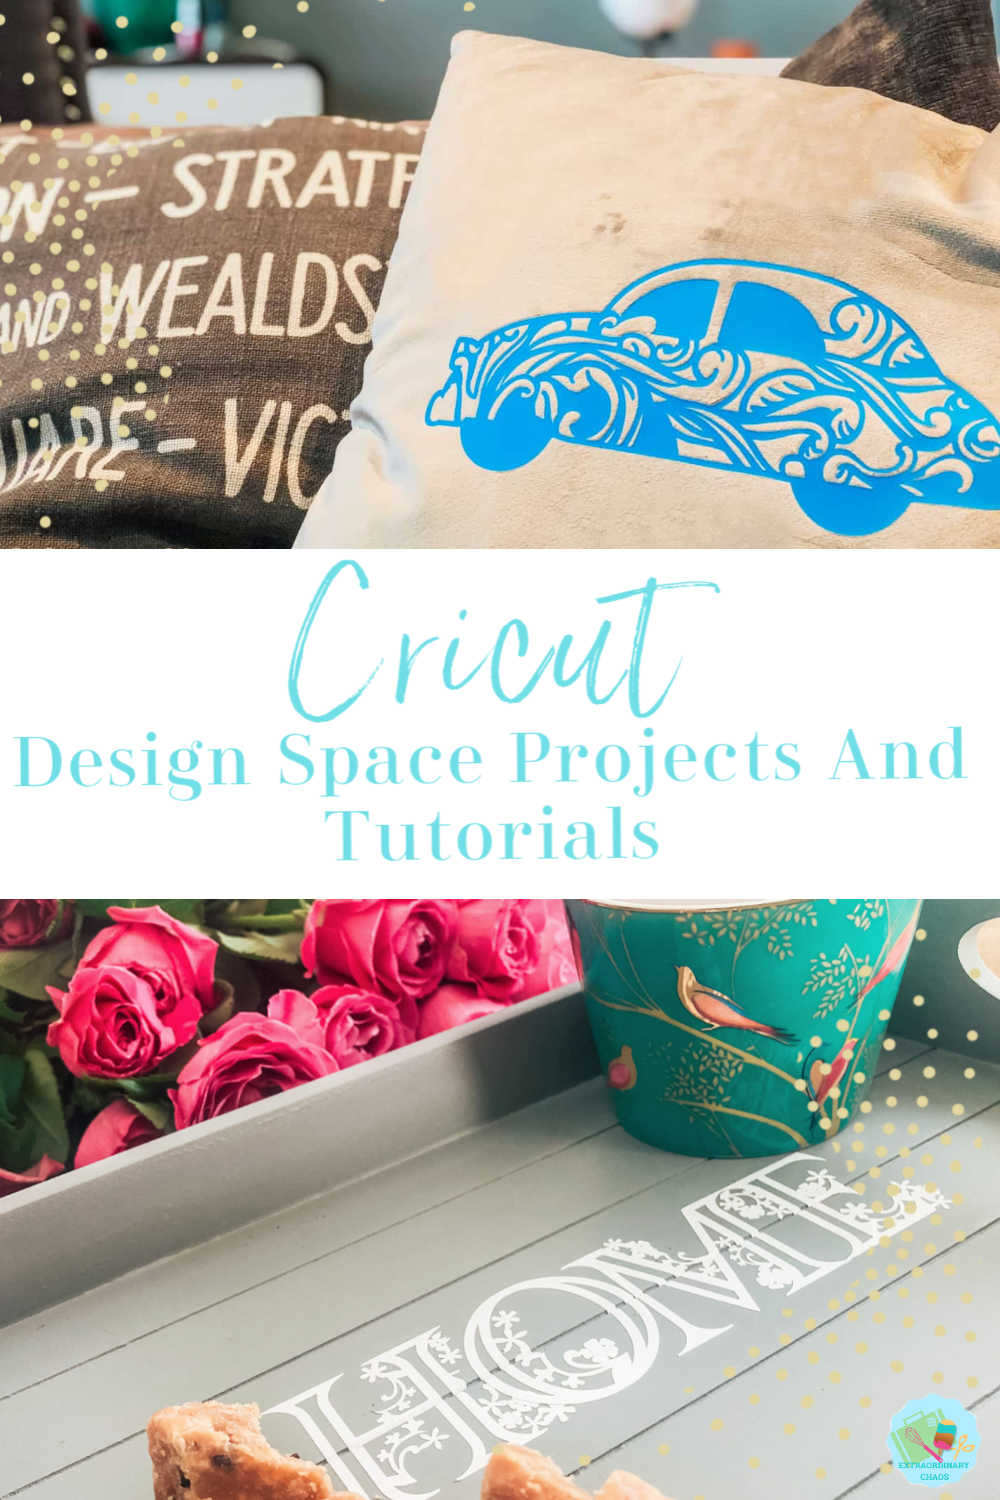 Cricut paper cut projects and tutorials to make projects for gifts and to sell.-3